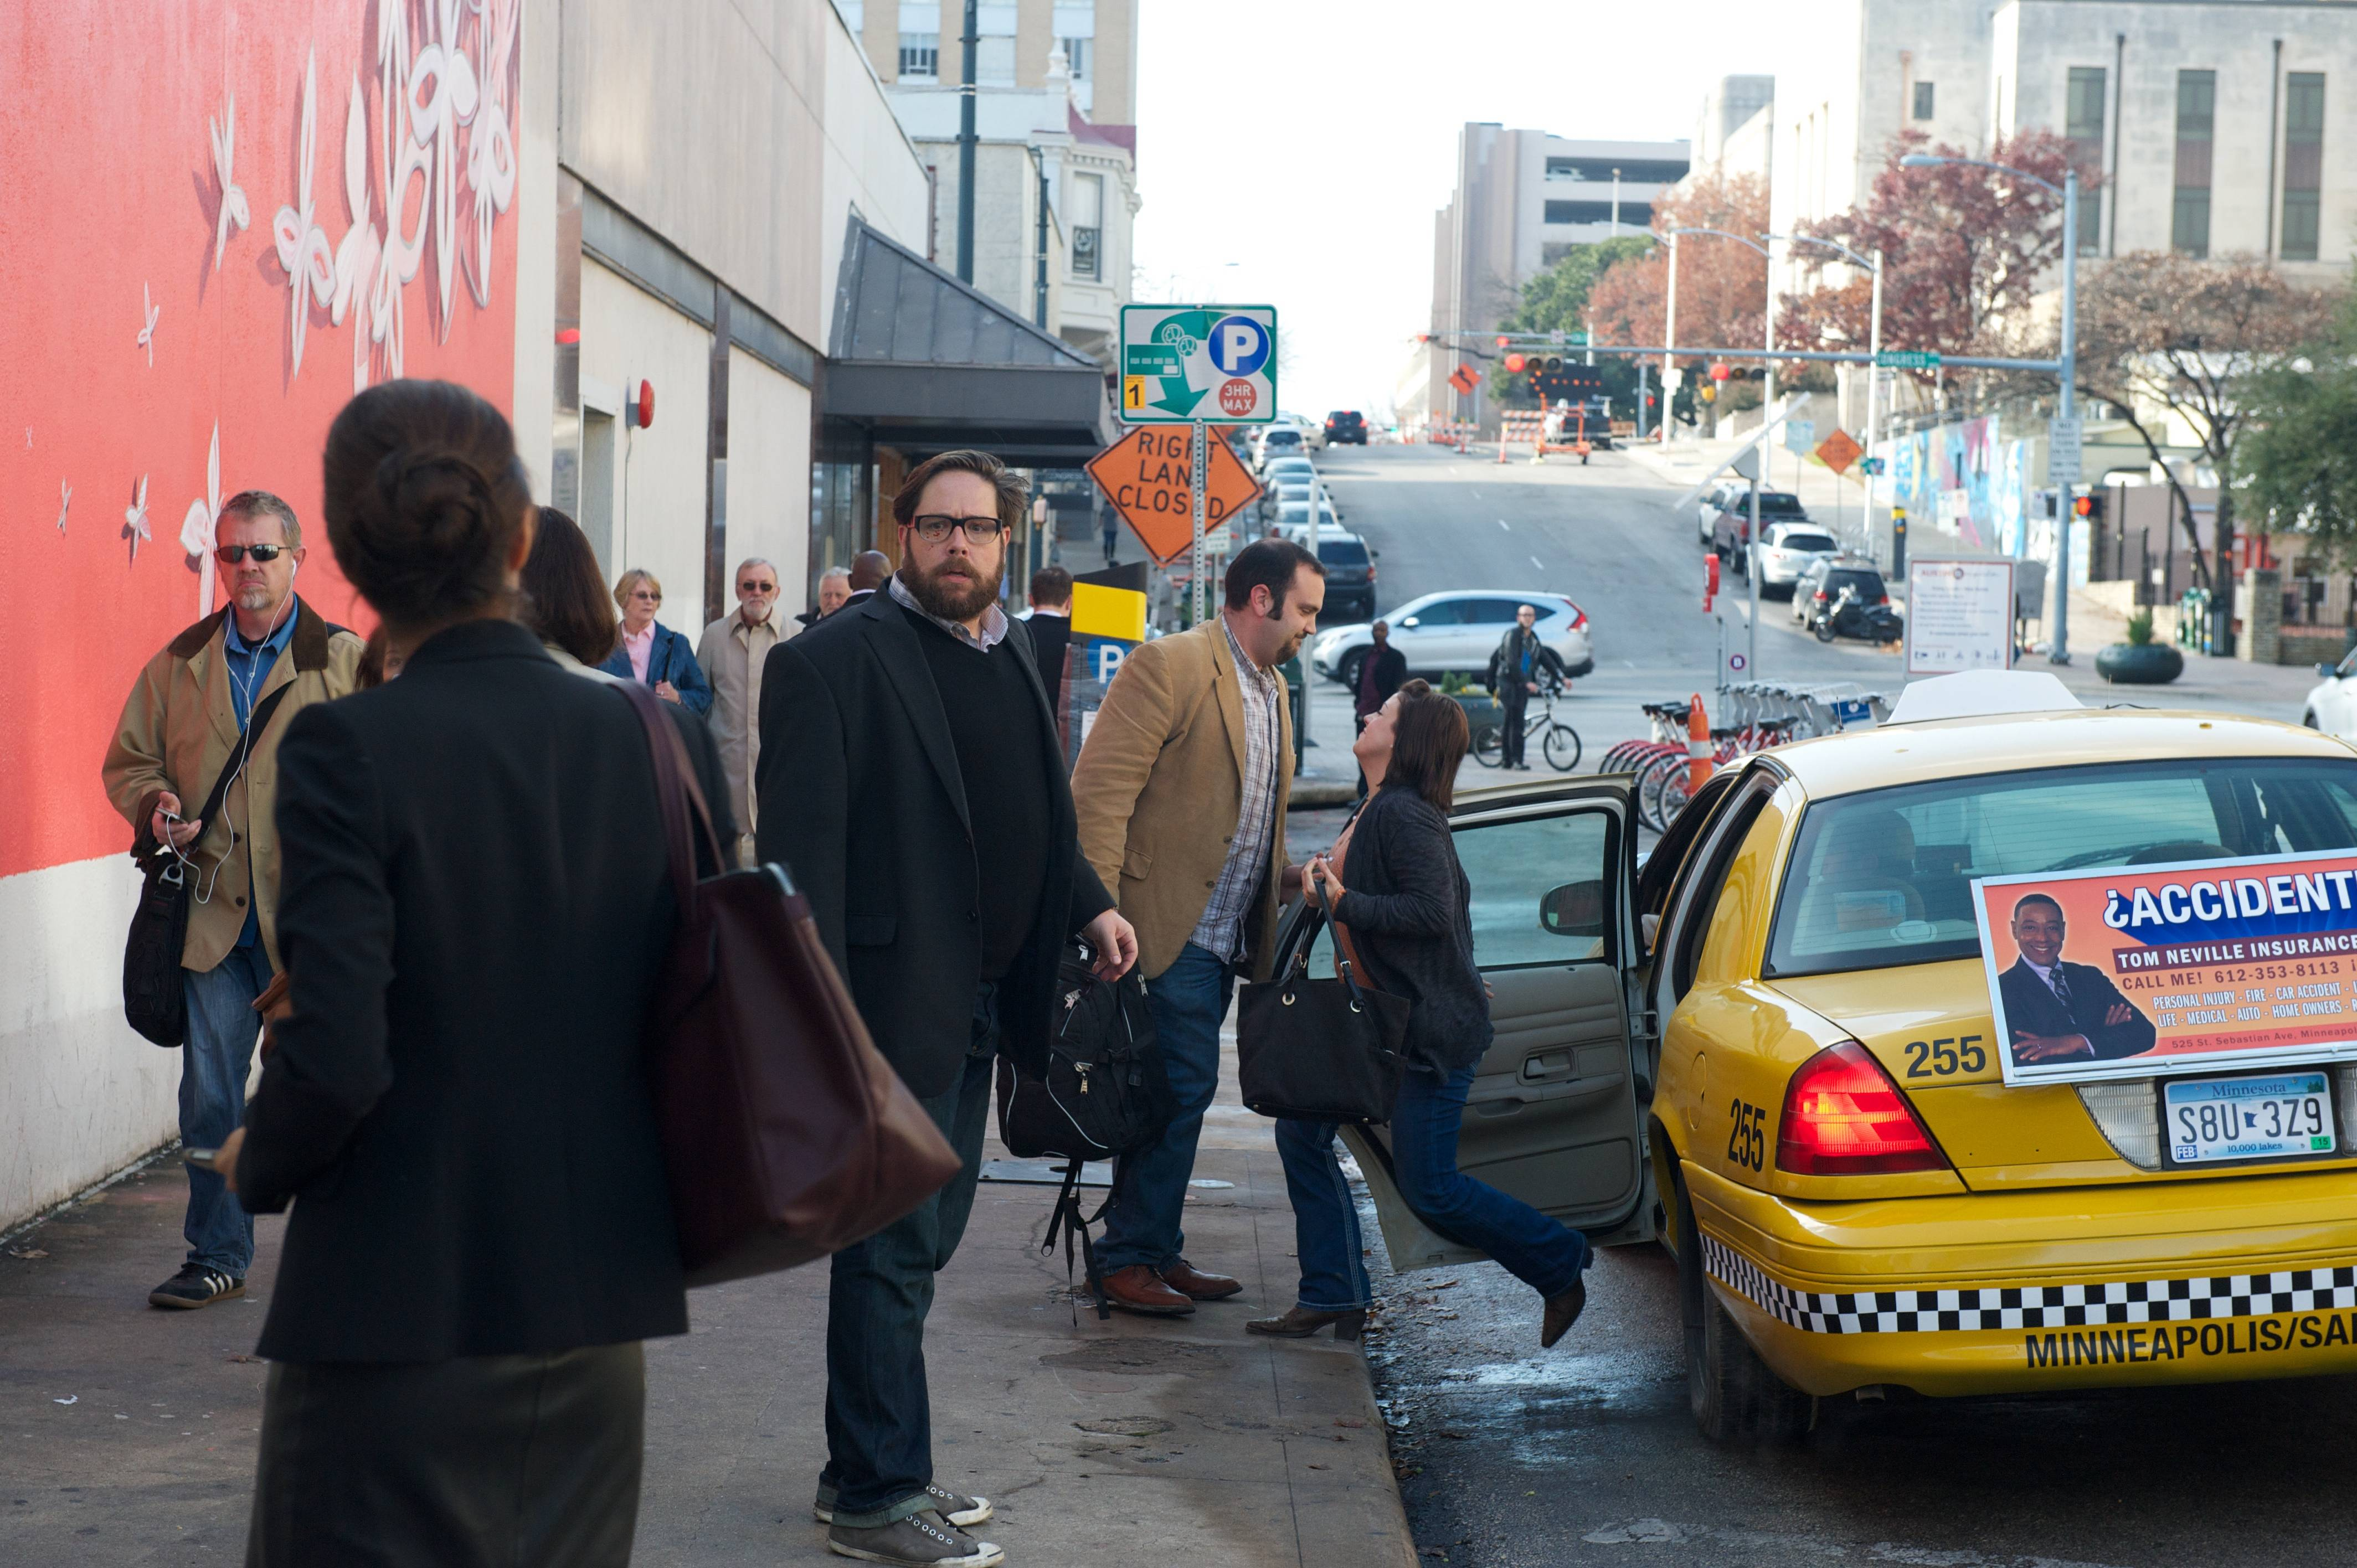 Revolution - Aaron Pittman stands bewildered on a vibrant city street with power